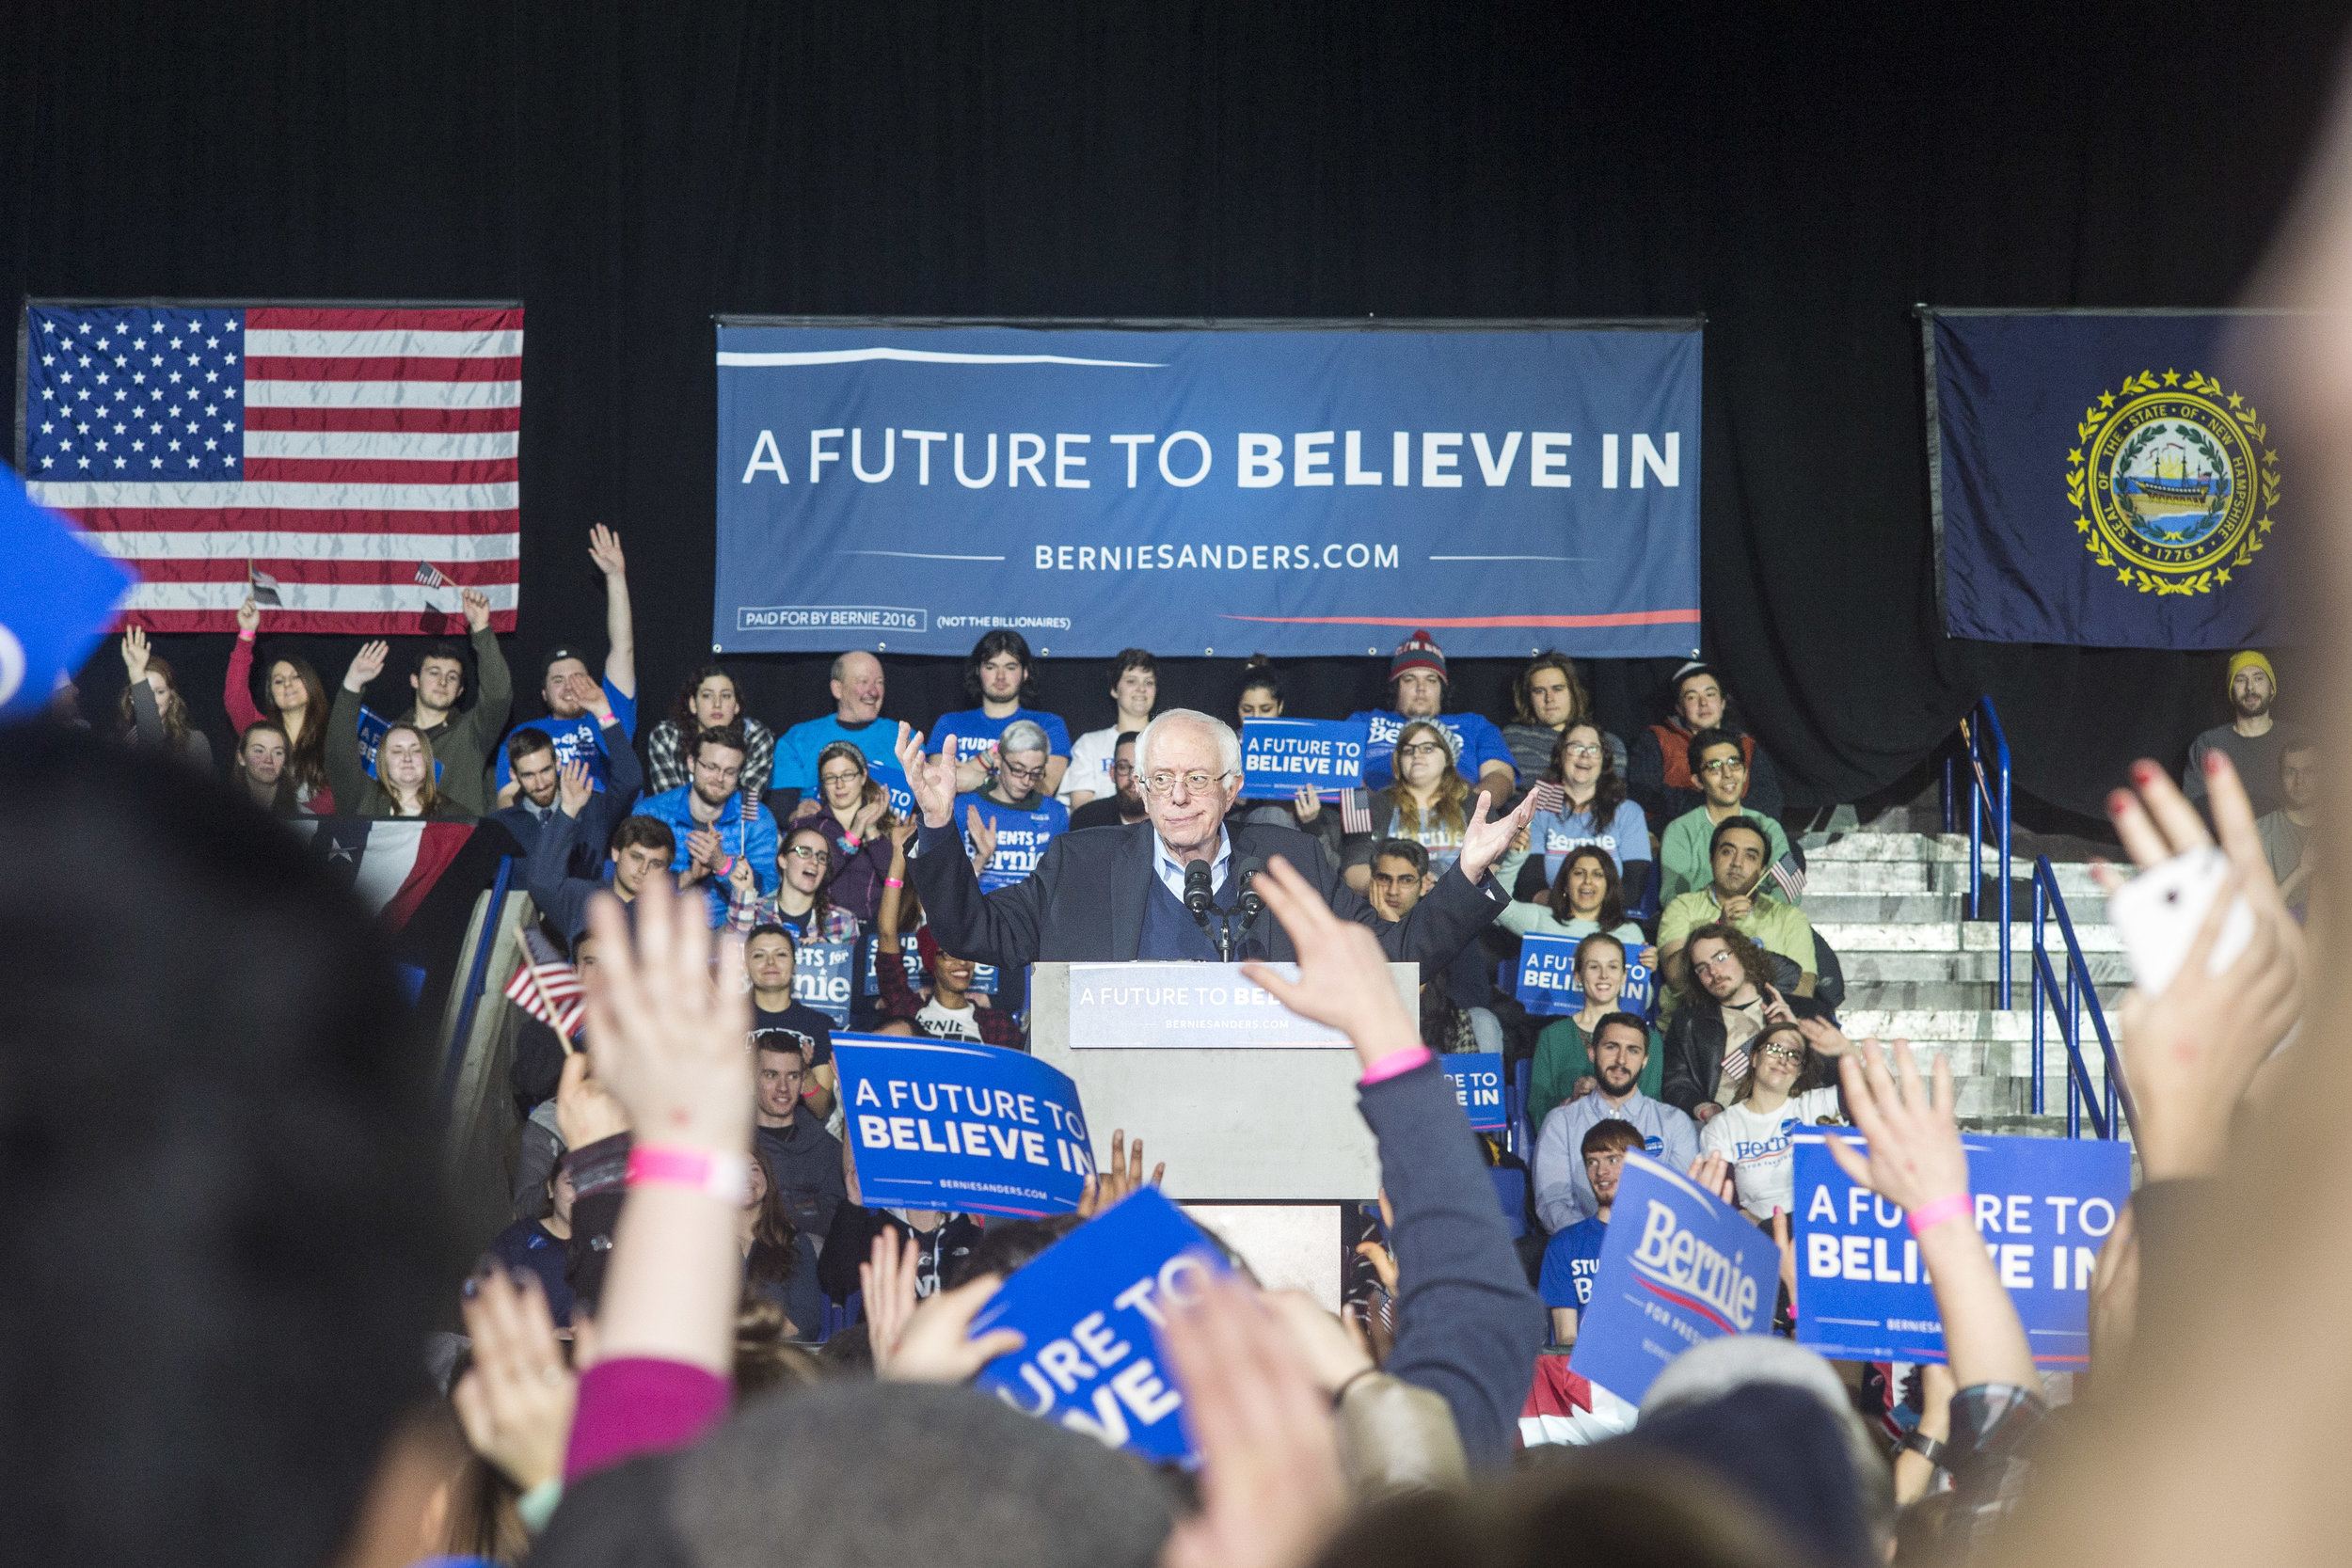 Senator Sanders raises his arms in disbelief over the specter of student debt on millenials.